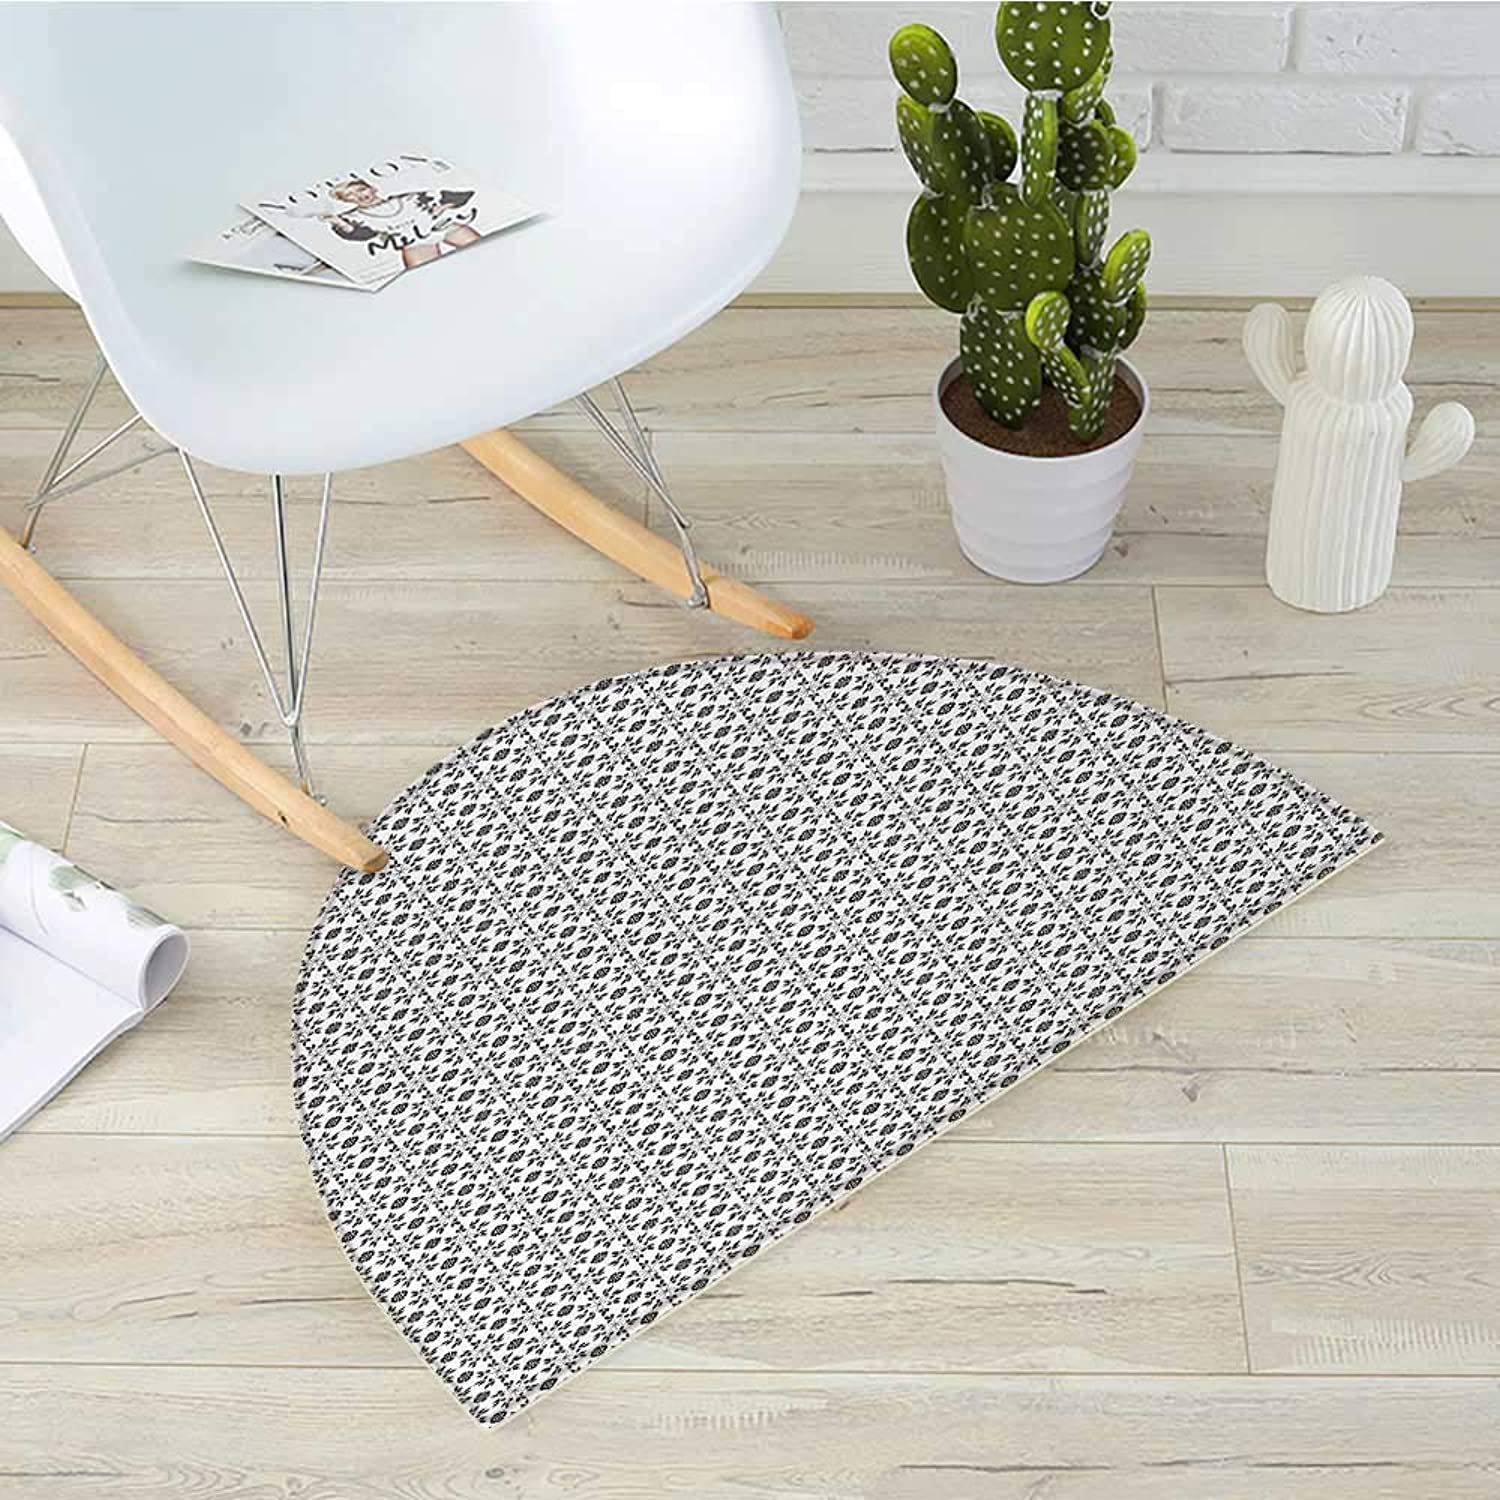 Black and White Half Round Door mats Monochrome Composition of Flowers and Foliage Leaves Vintage Inspirations Bathroom Mat H 31.5  xD 47.2  Black White